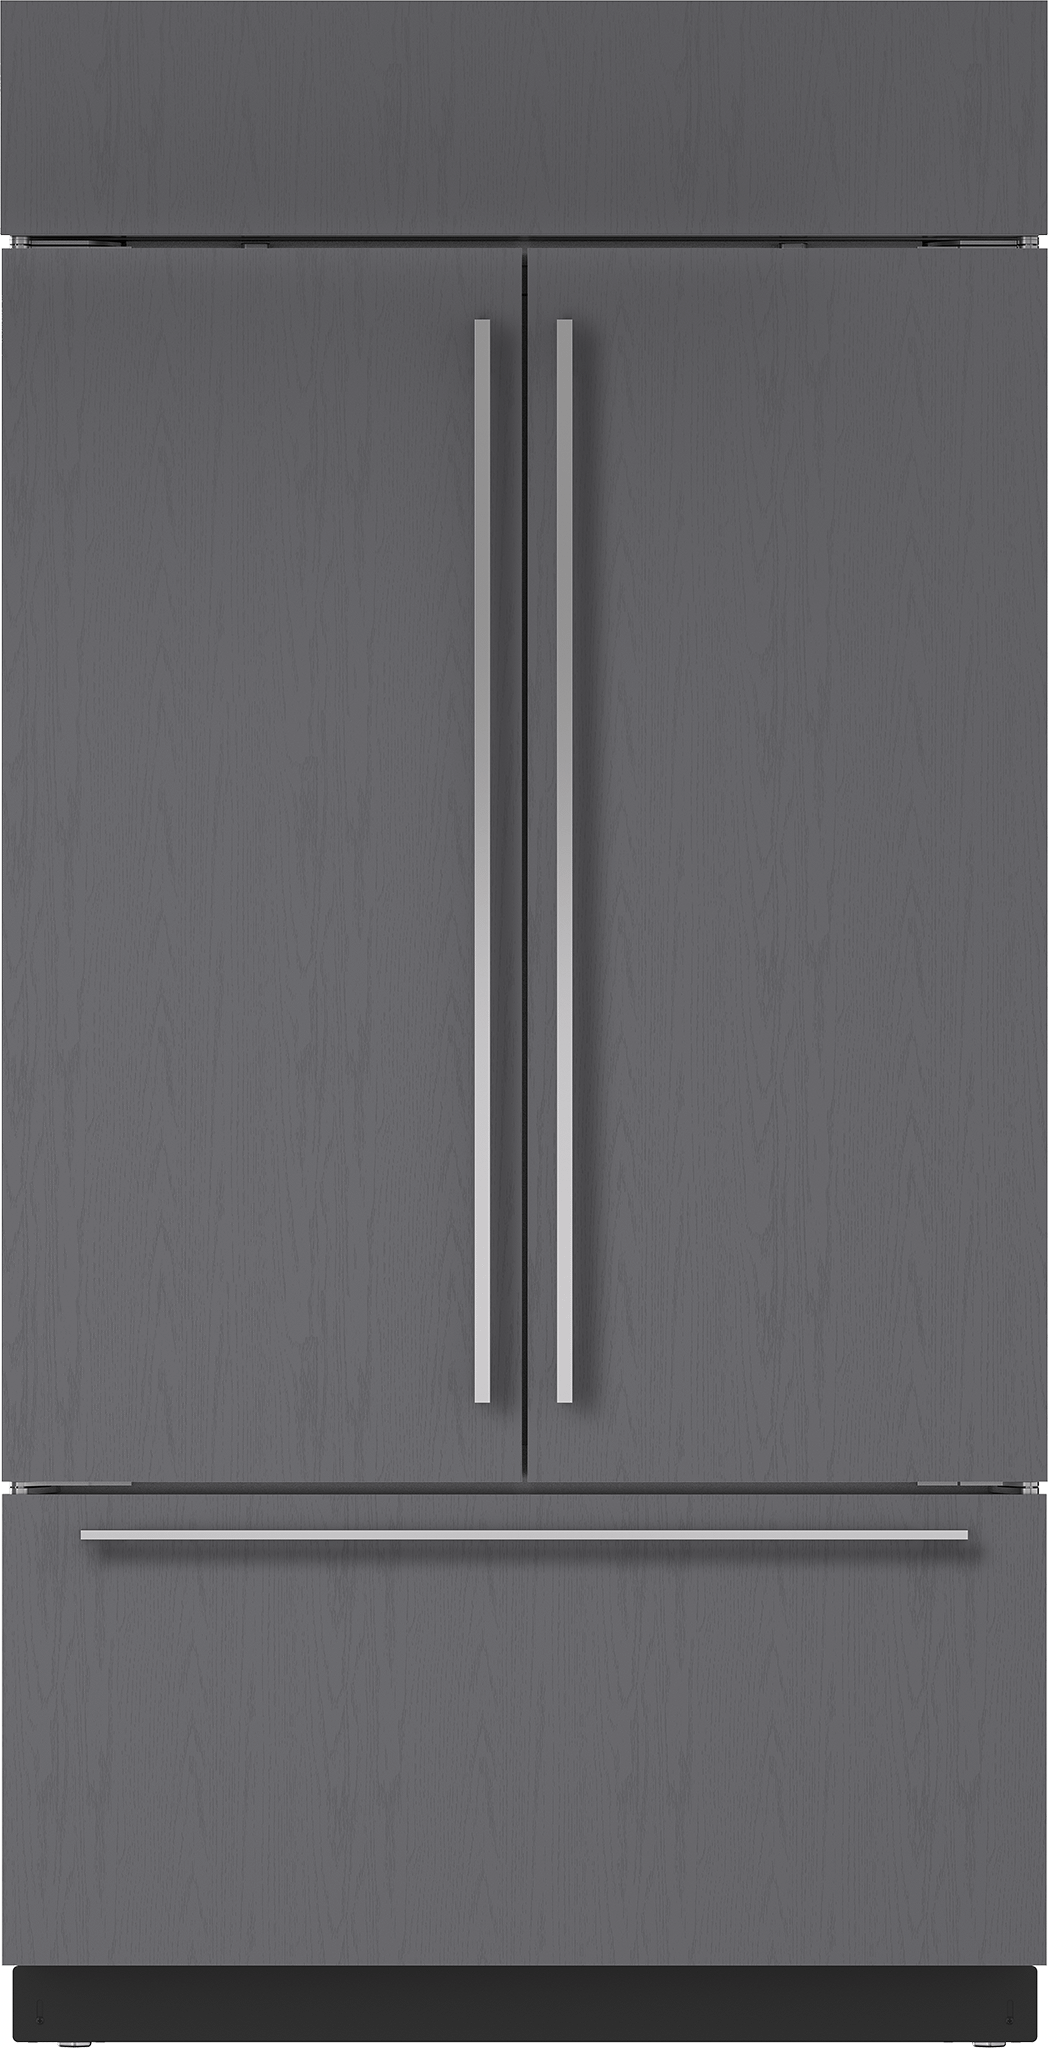 "Subzero42"" Classic French Door Refrigerator/freezer - Panel Ready"